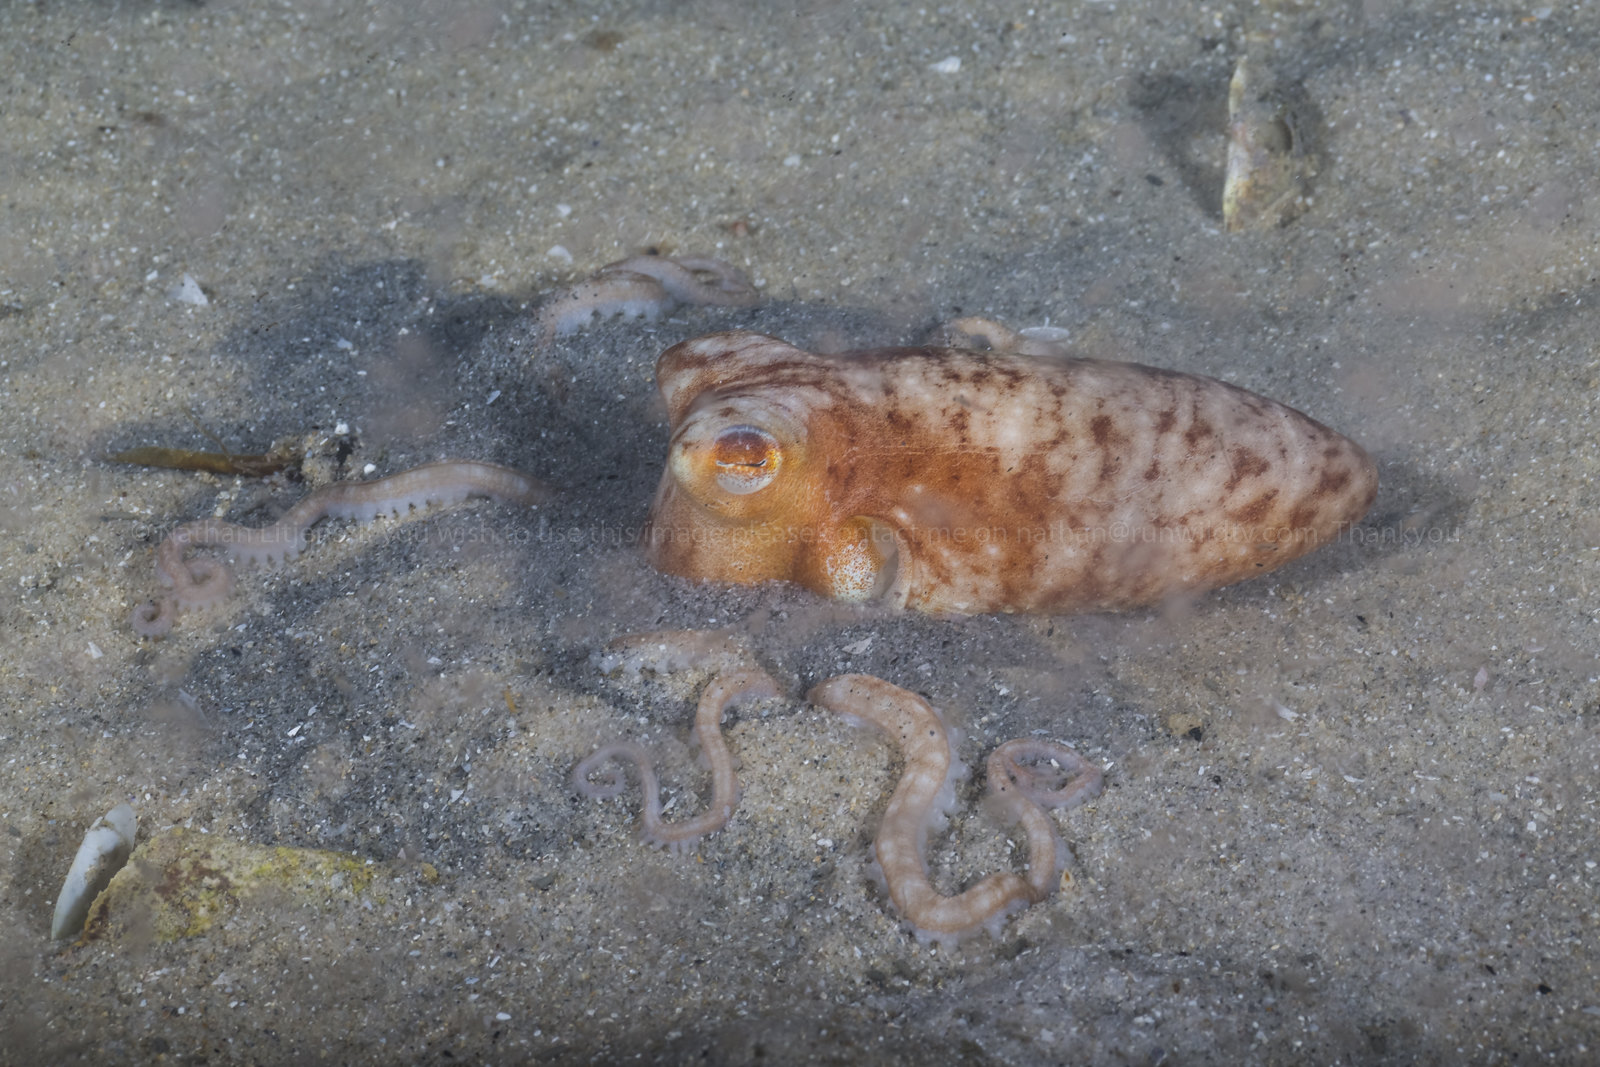 Southern sand octopus burying itself